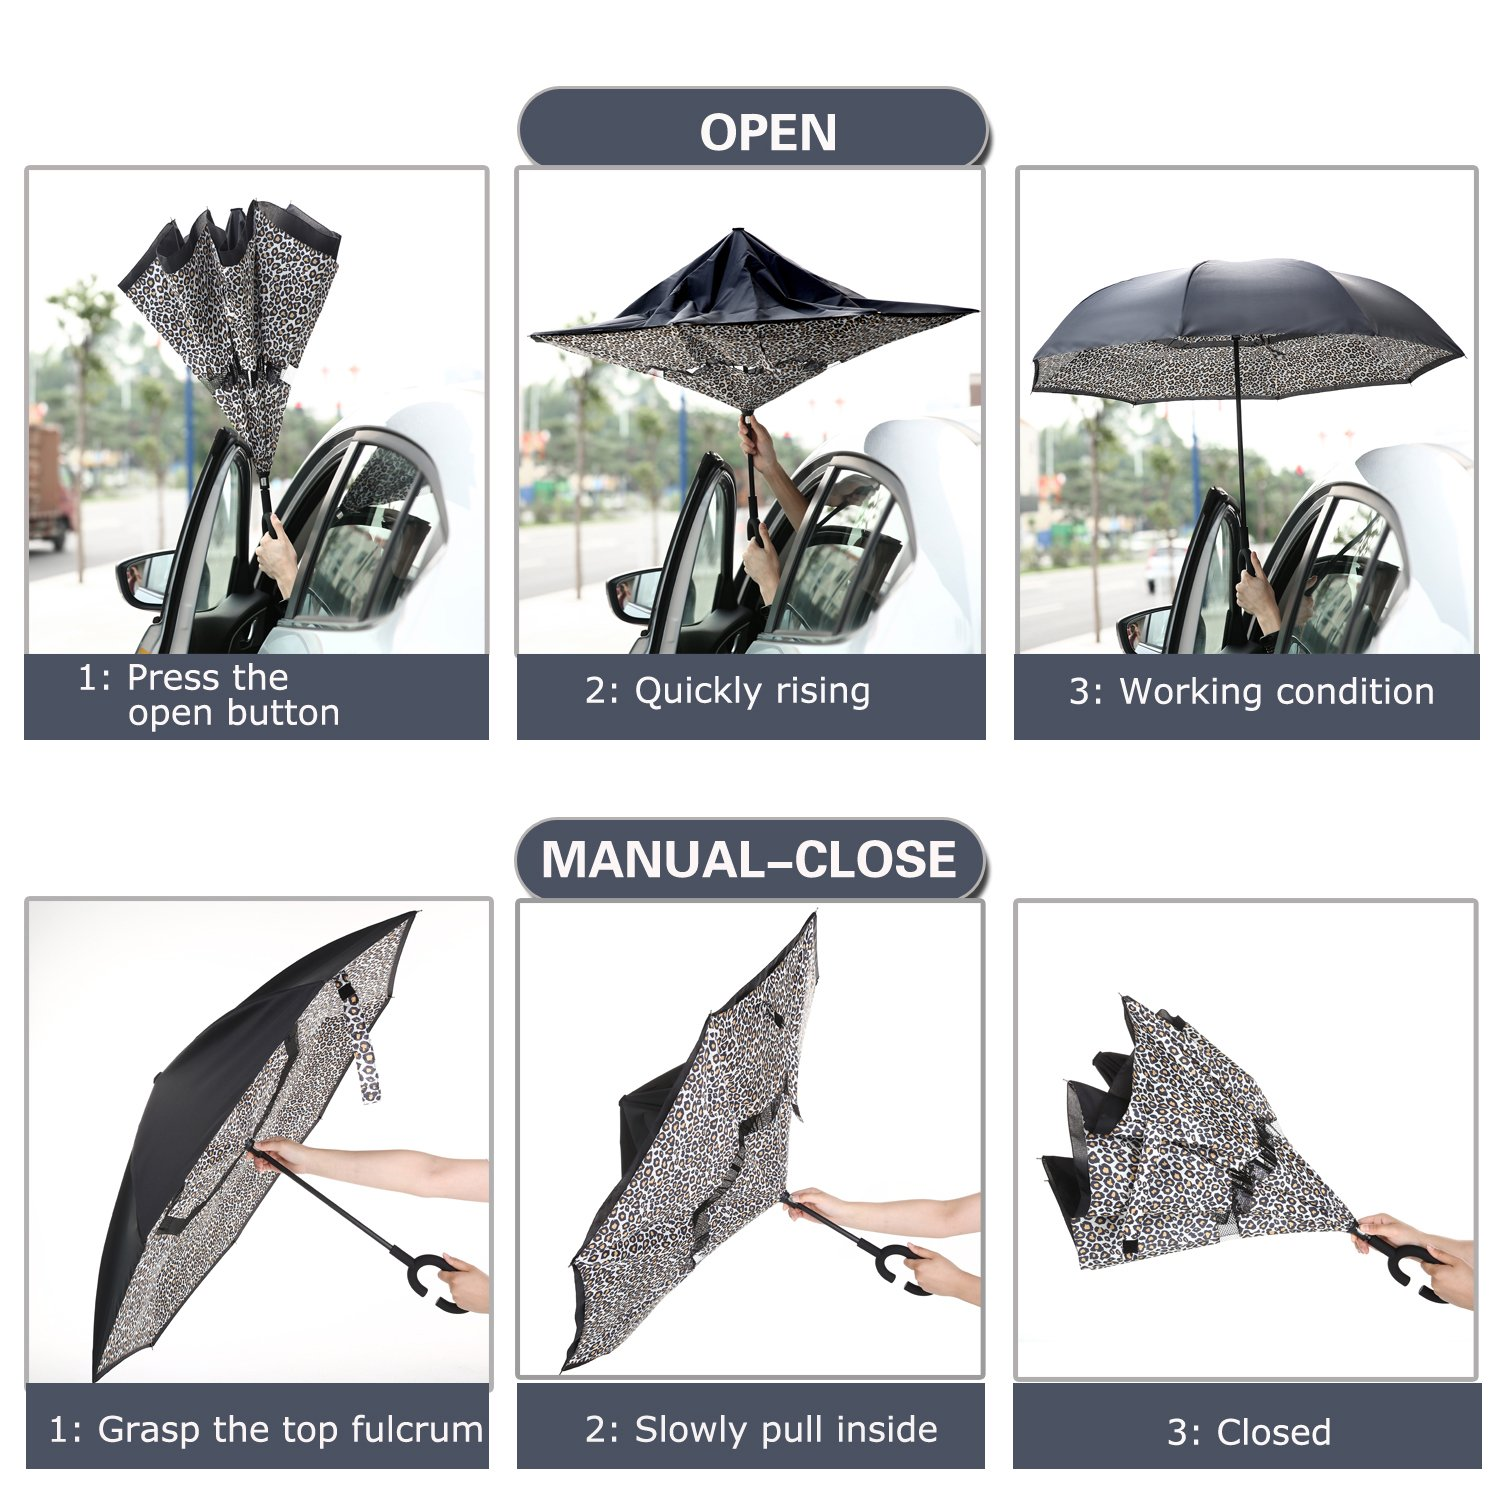 Barasol Reverse Folding Umbrella Travel Windproof Compact Umbrella Waterproof Double Canopy Vented Layer Inverted Close Golf Umbrella Lightweight for Man Women, Manually Open Leopard by Barasol (Image #8)